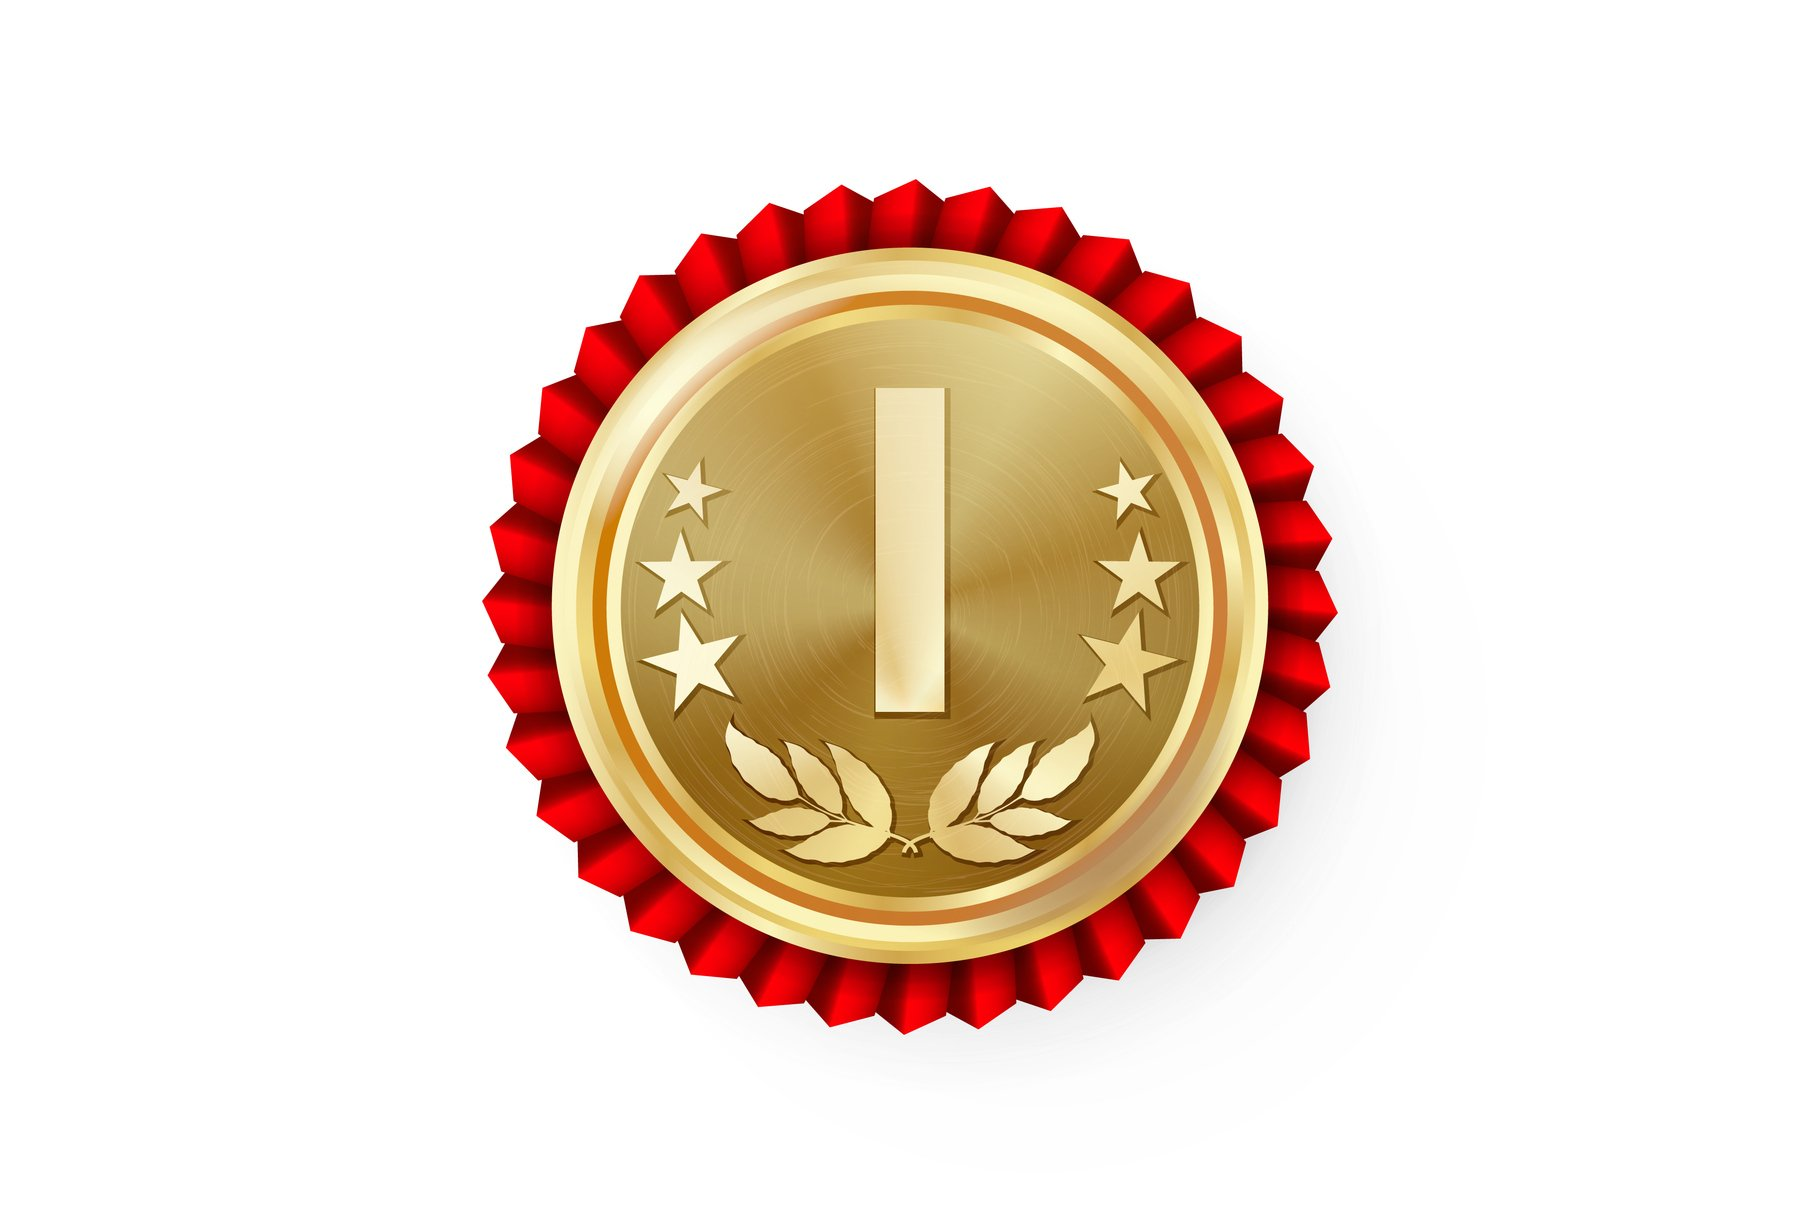 Gold 1st Place Rosette, Badge example image 1